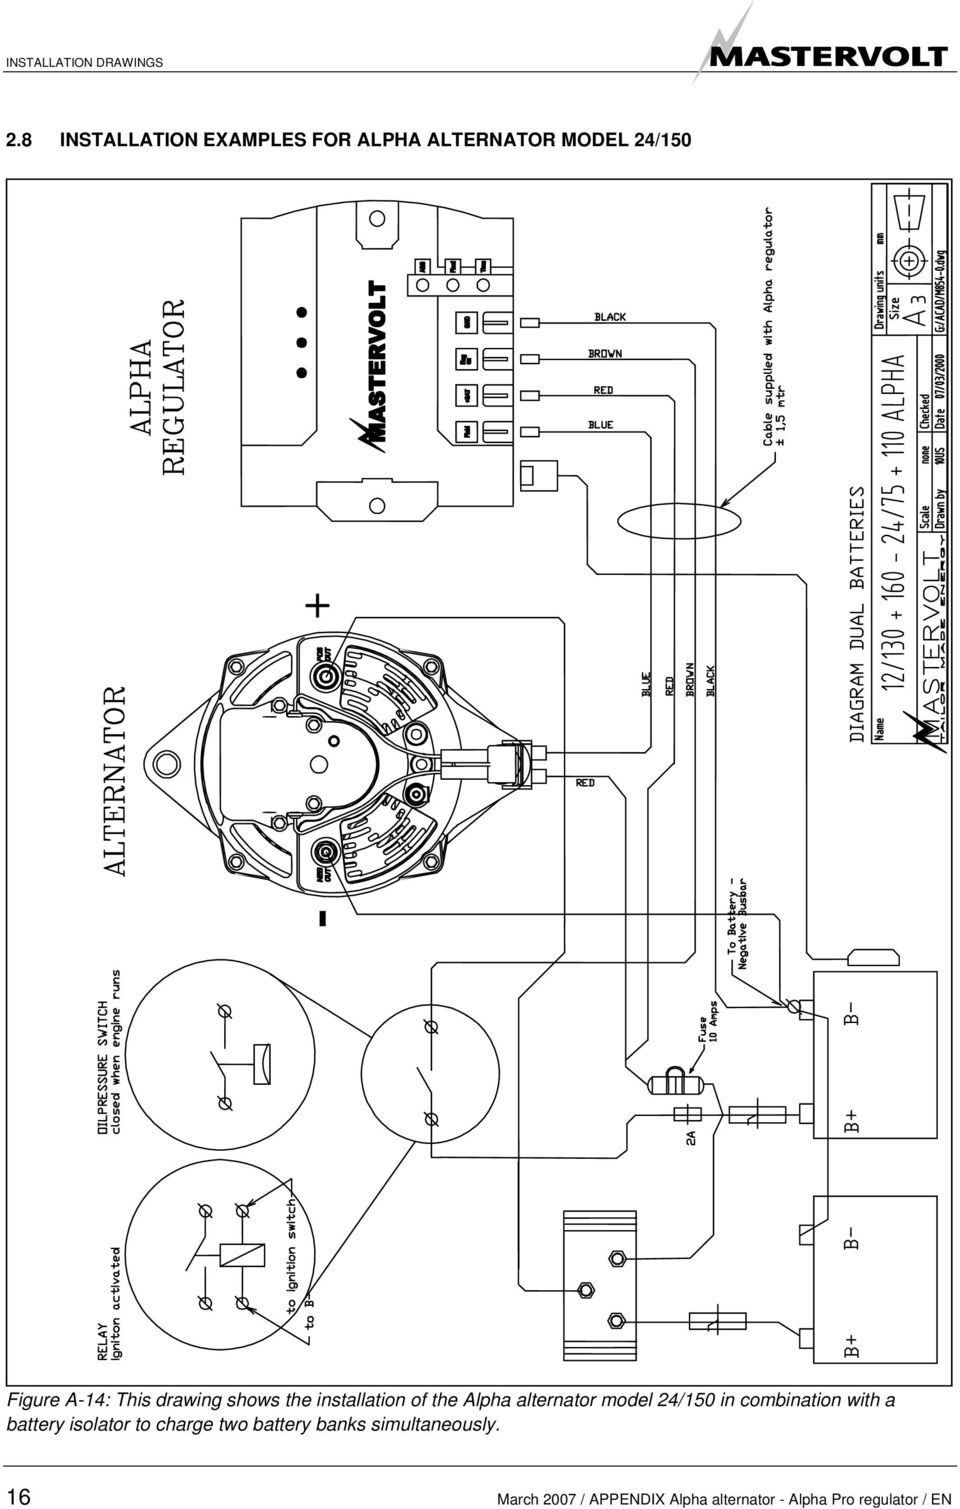 drawing shows the installation of the Alpha alternator model 24/150 in